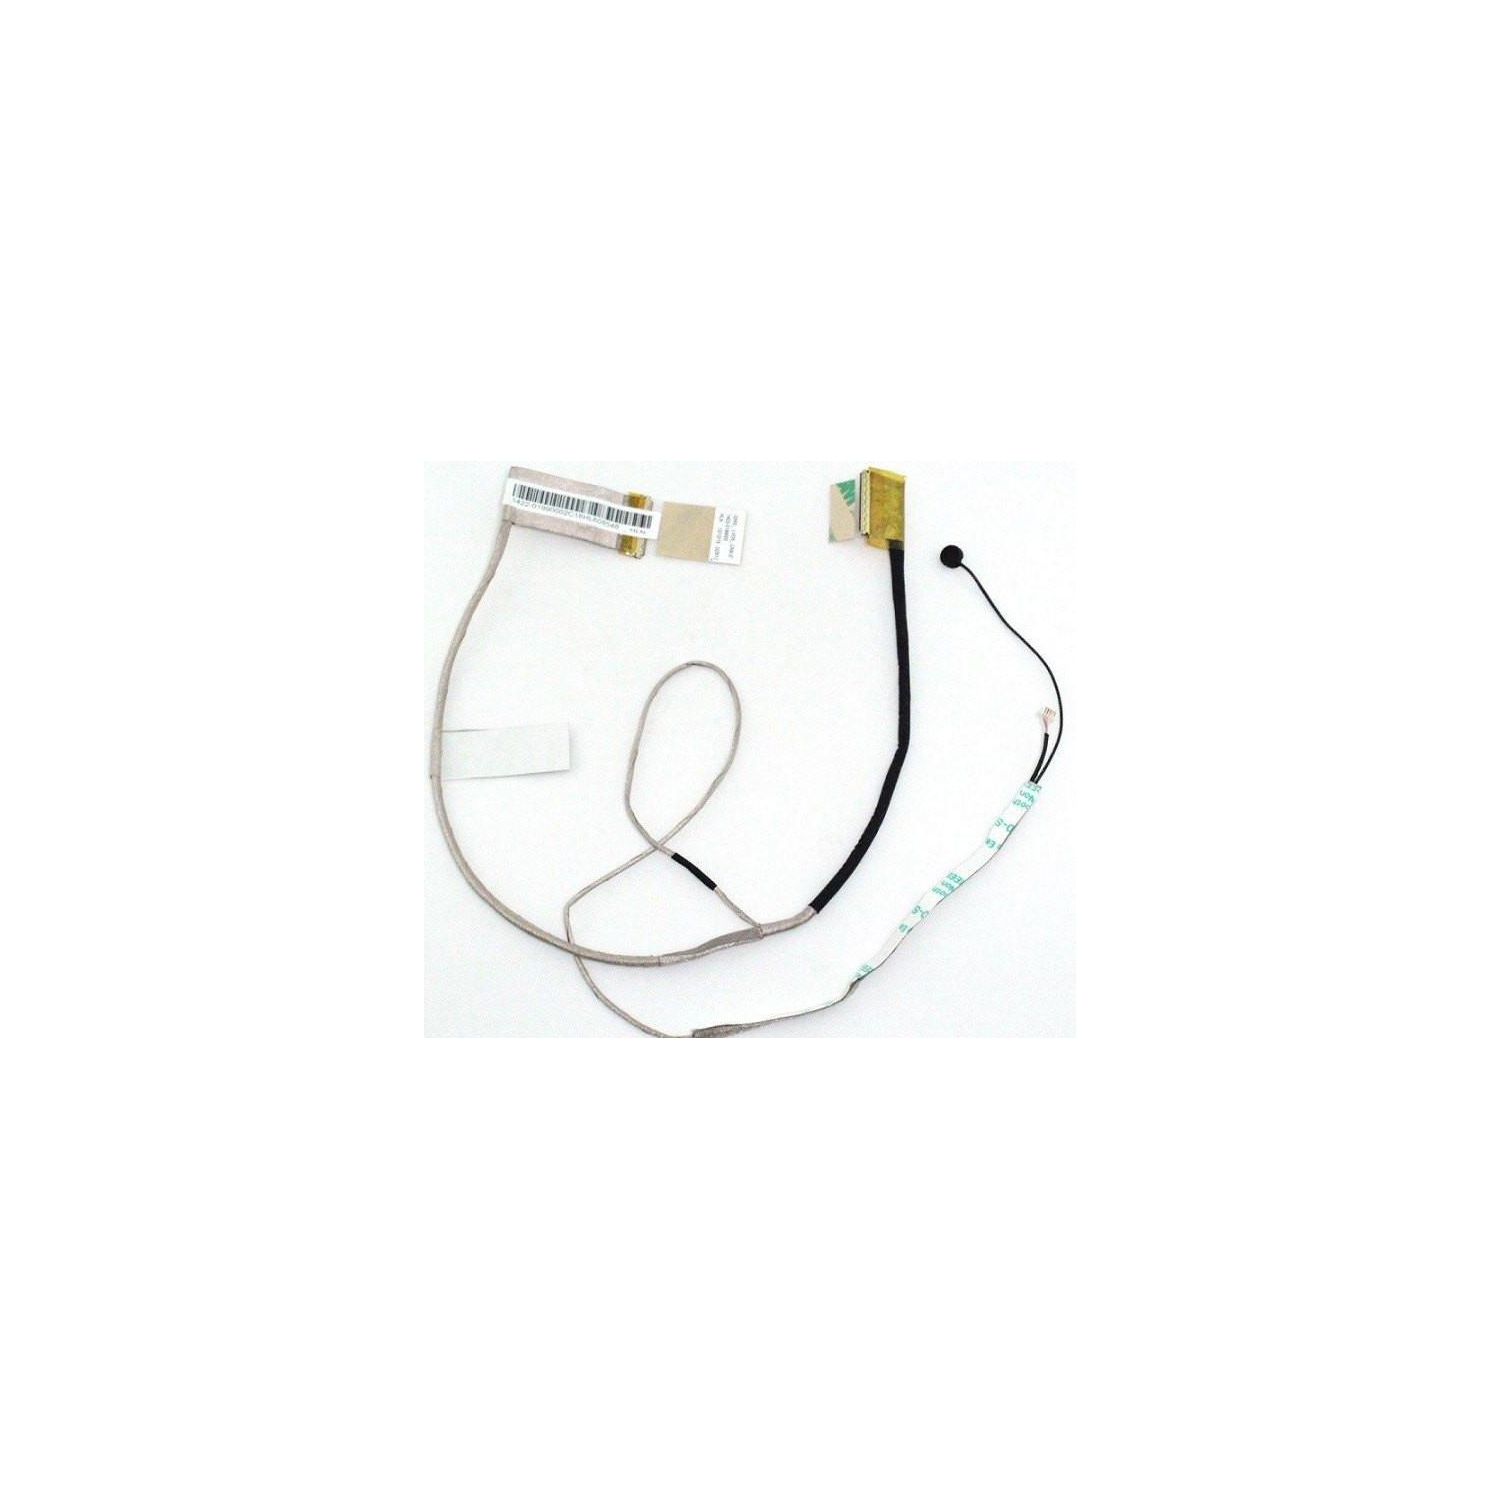 lcd laptop wiring diagram database Television Wiring-Diagram new asus q500 q500a lcd led lvds display cable 1422 01an000 1422 laptop lcd repair lcd laptop